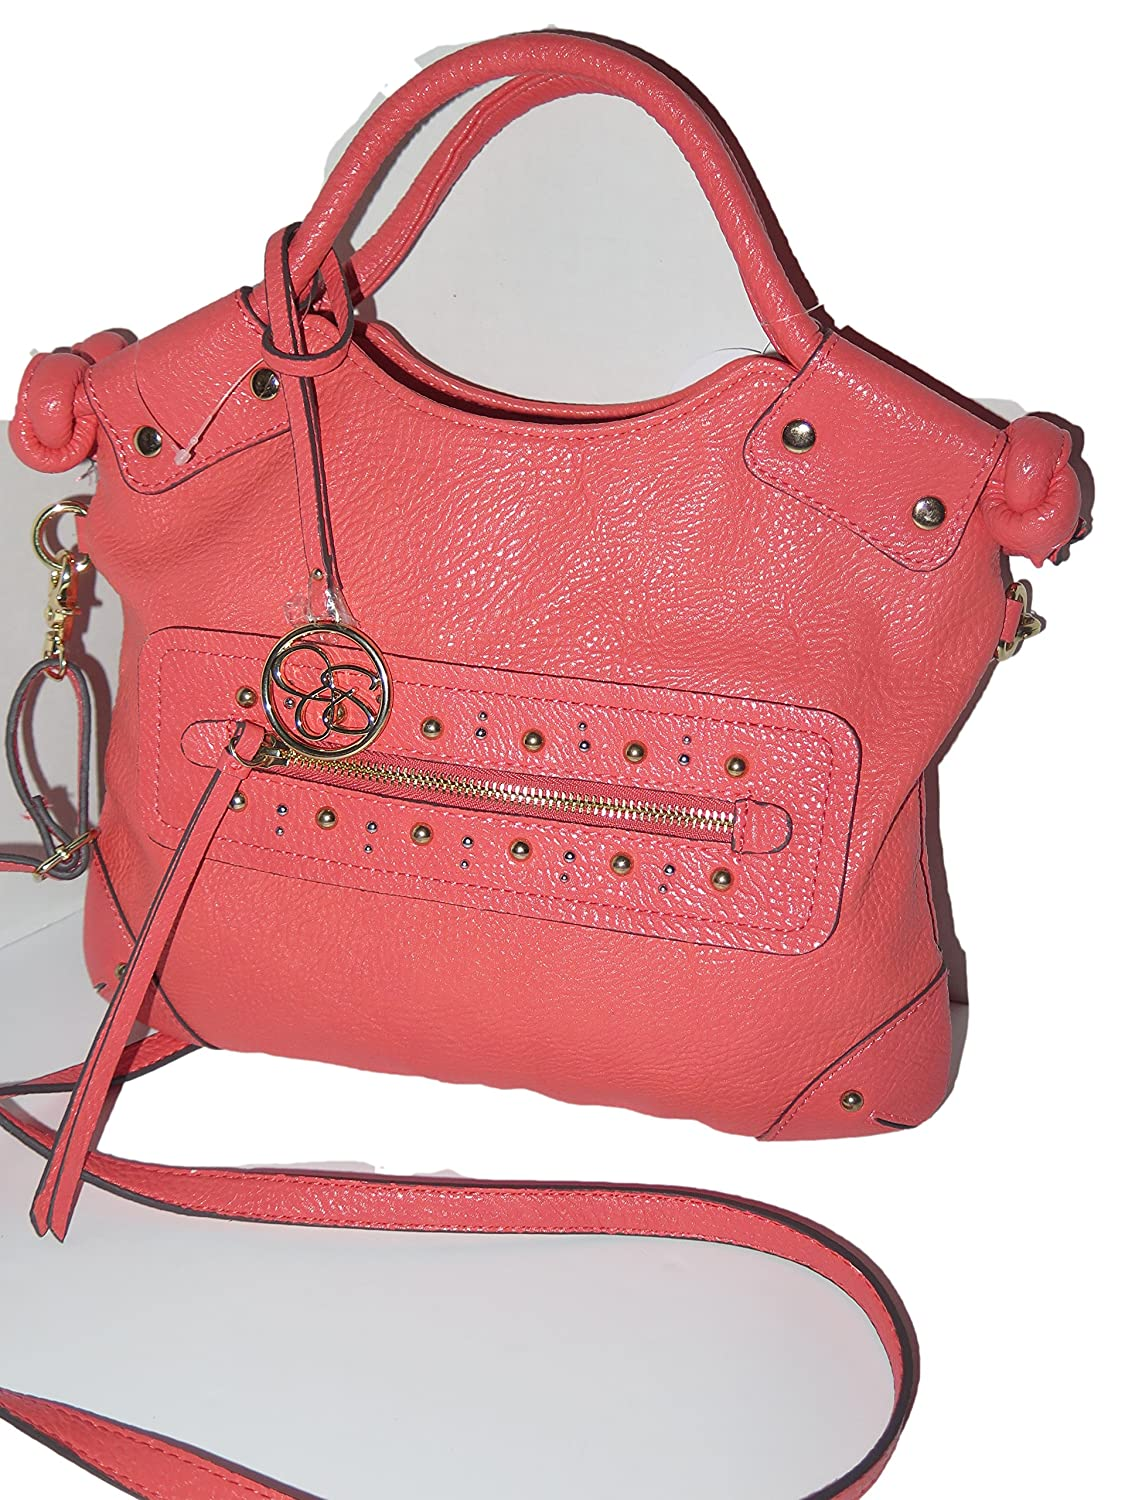 Jessica Simpson GAMELLIA Cayenne Leather Shoulder Tote Bag JS6924